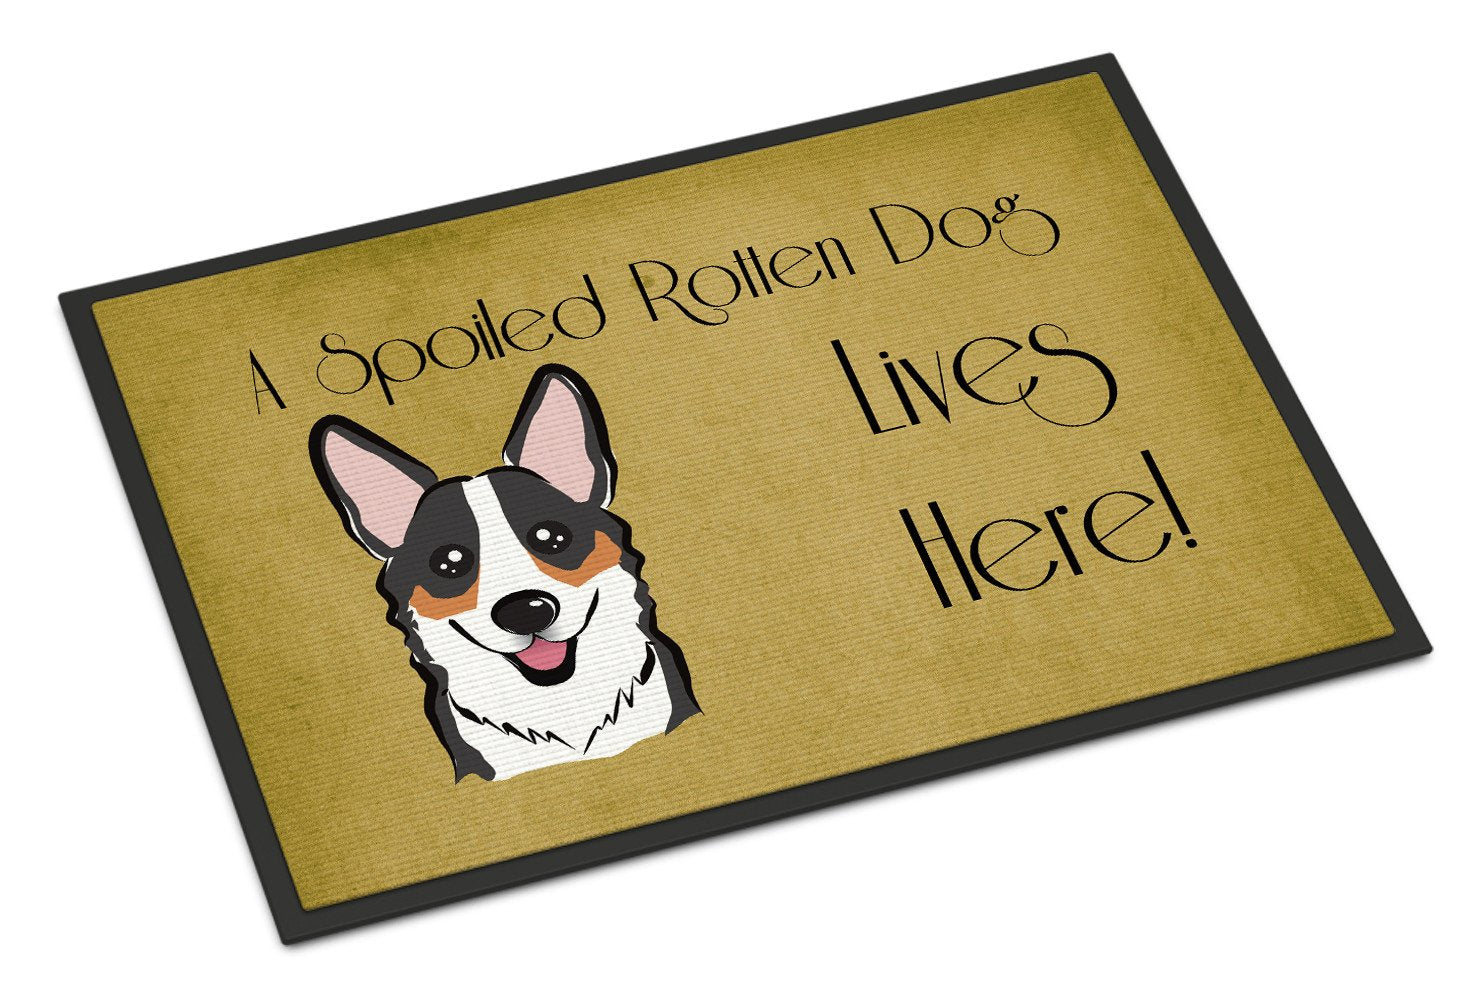 Tricolor Corgi Spoiled Dog Lives Here Indoor or Outdoor Mat 18x27 BB1503MAT - the-store.com